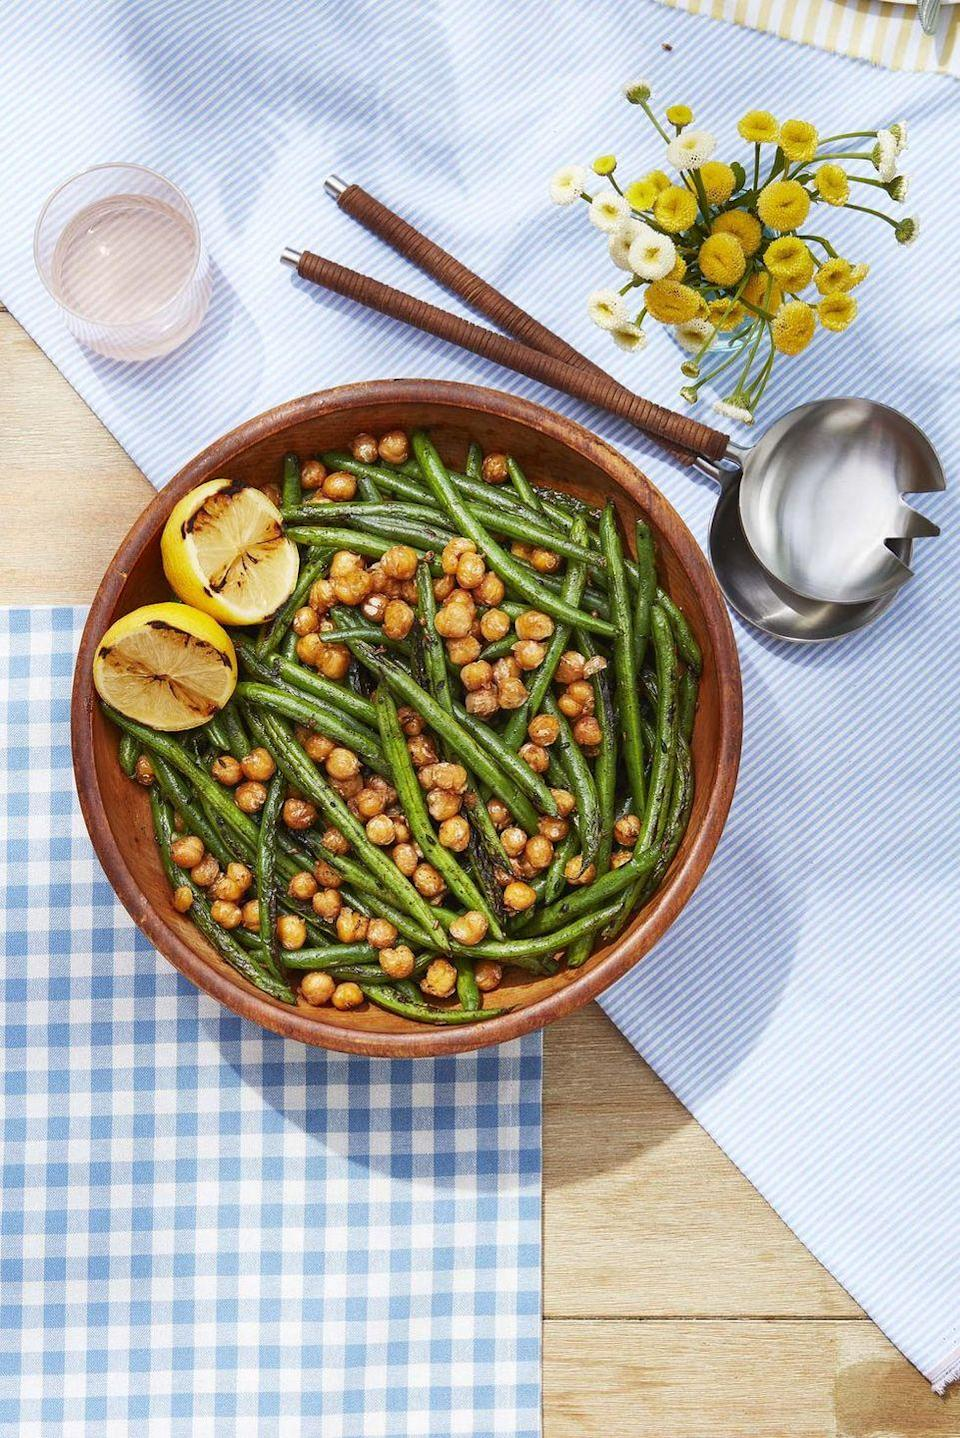 """<p>Whether they're cooked over an open fire or on your kitchen stove, these crispy green beans and chickpeas have just a hint of cumin and will have guests fighting over seconds.</p><p><strong><a href=""""https://www.countryliving.com/food-drinks/a32353817/green-beans-with-crispy-chickpeas/"""" rel=""""nofollow noopener"""" target=""""_blank"""" data-ylk=""""slk:Get the recipe"""" class=""""link rapid-noclick-resp"""">Get the recipe</a>.</strong> </p>"""